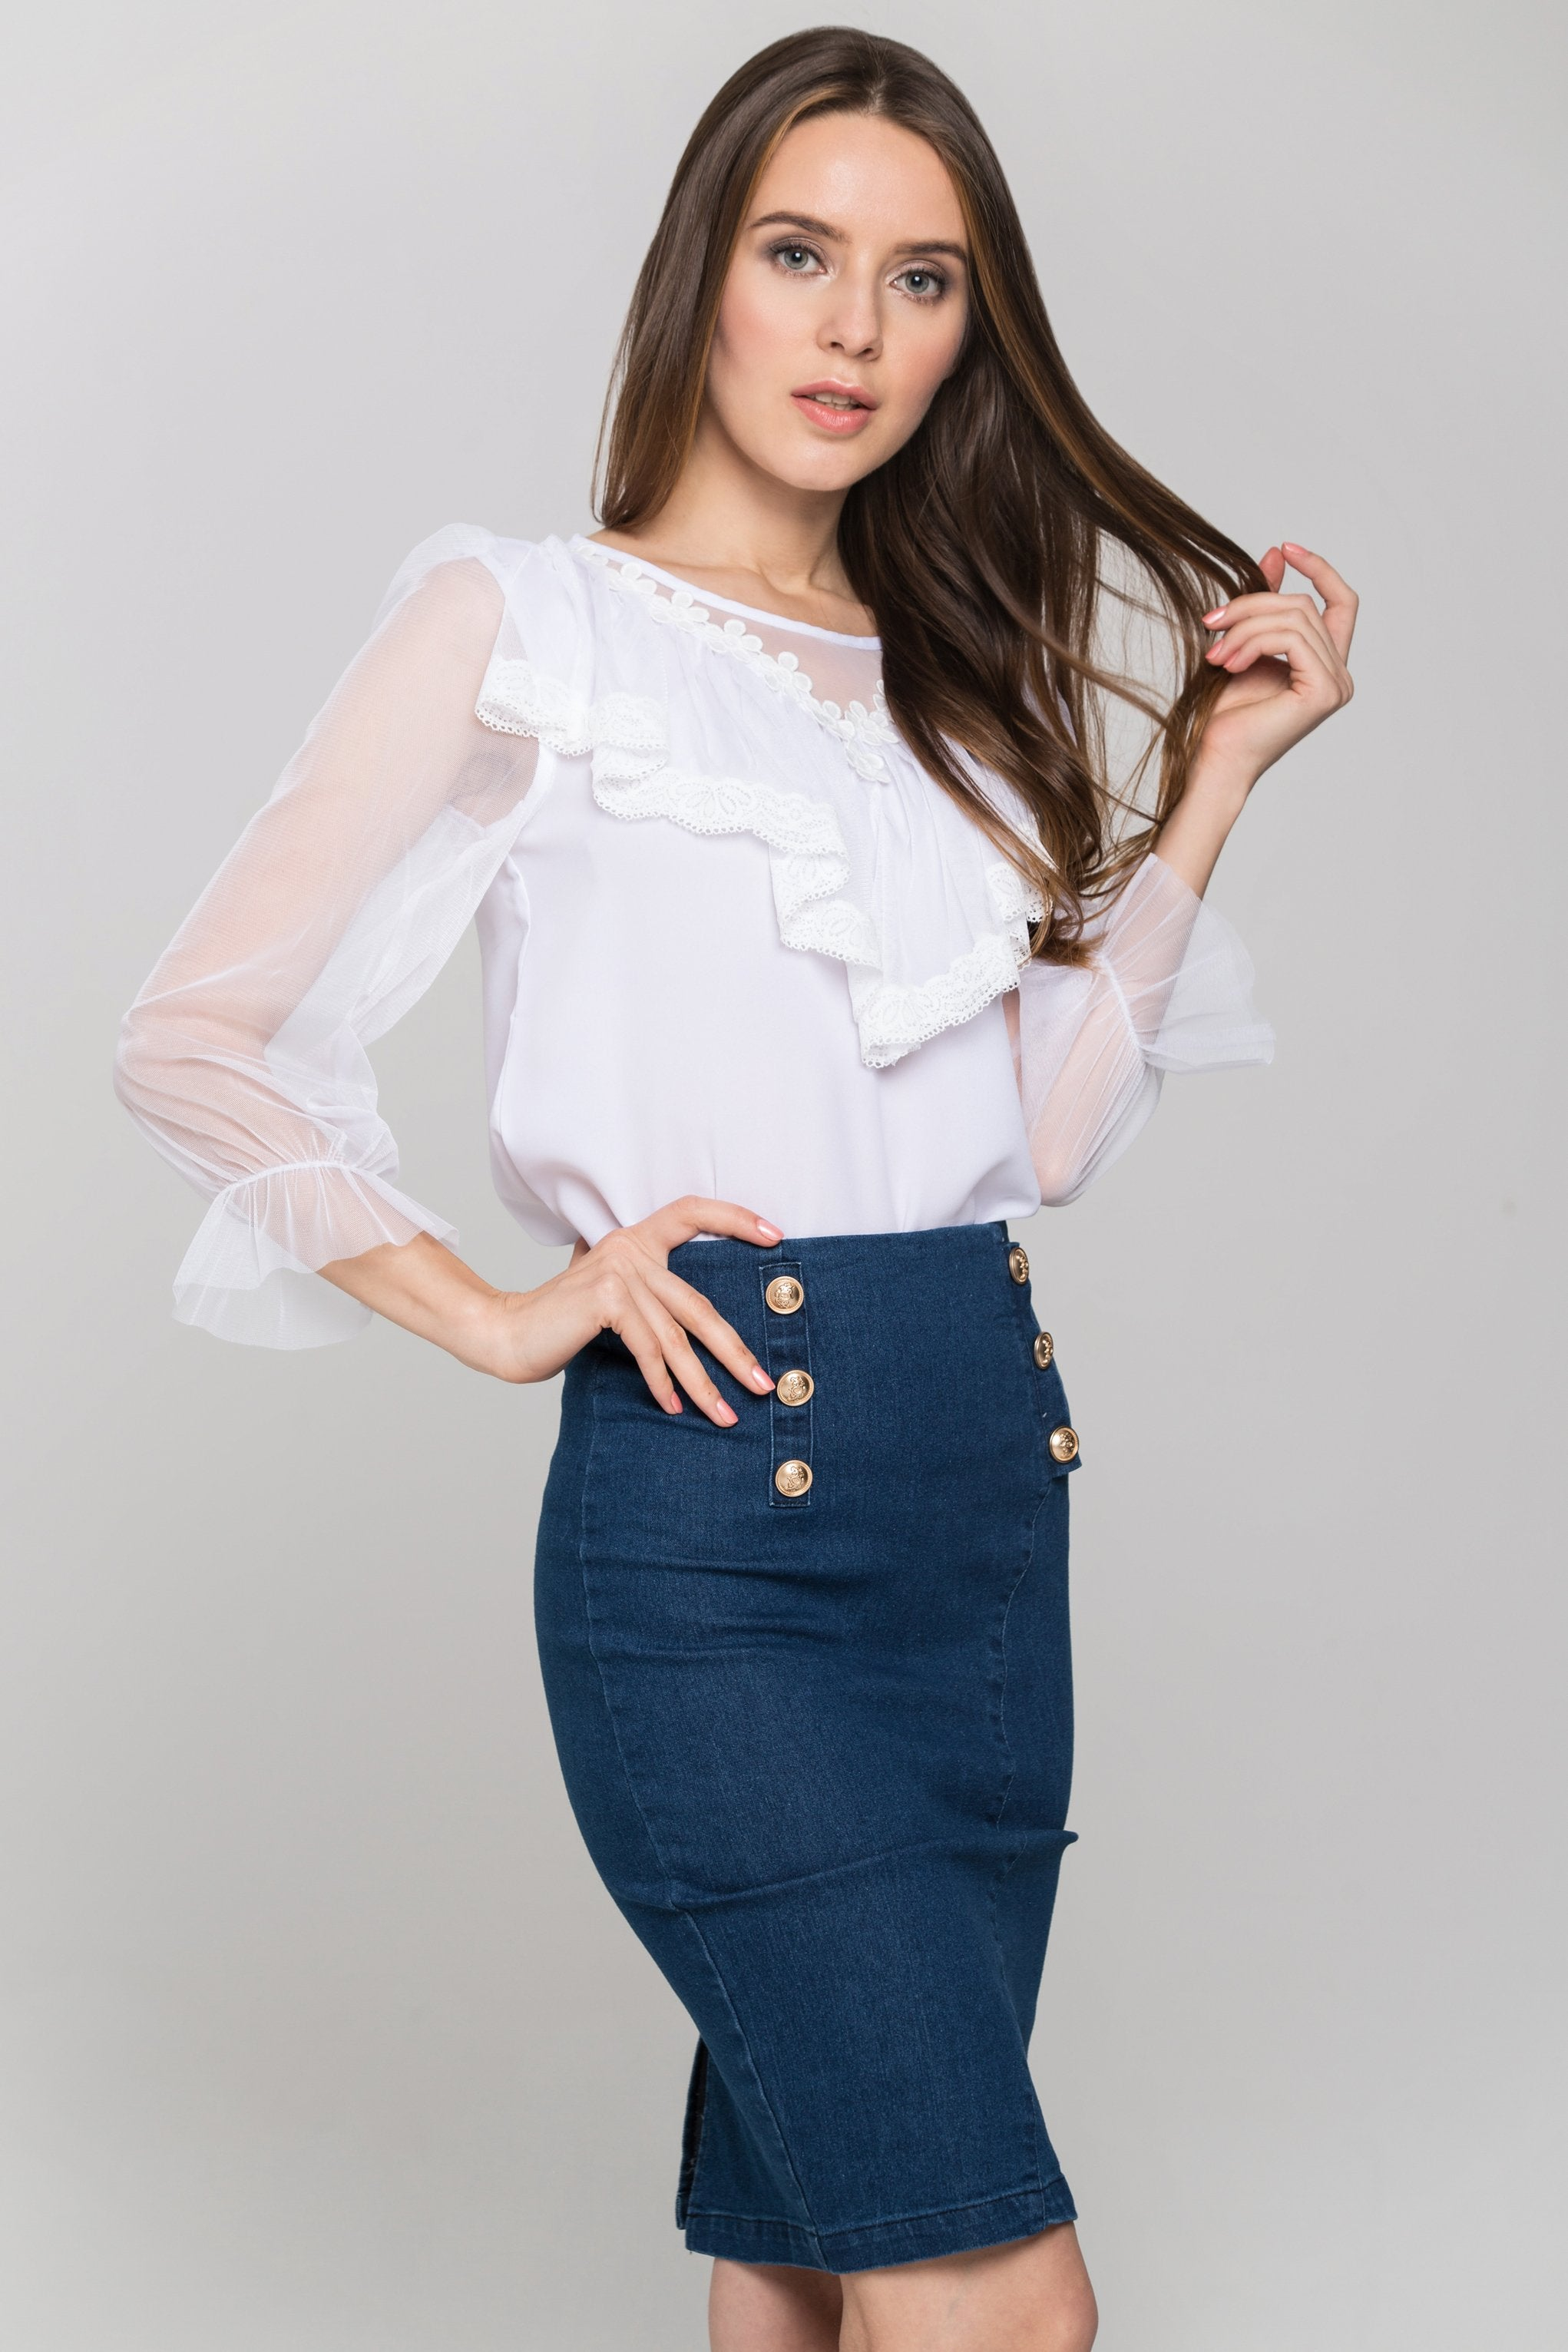 white-sheer-sleeves-gabot-top-and-denim-skirt-own-the-look